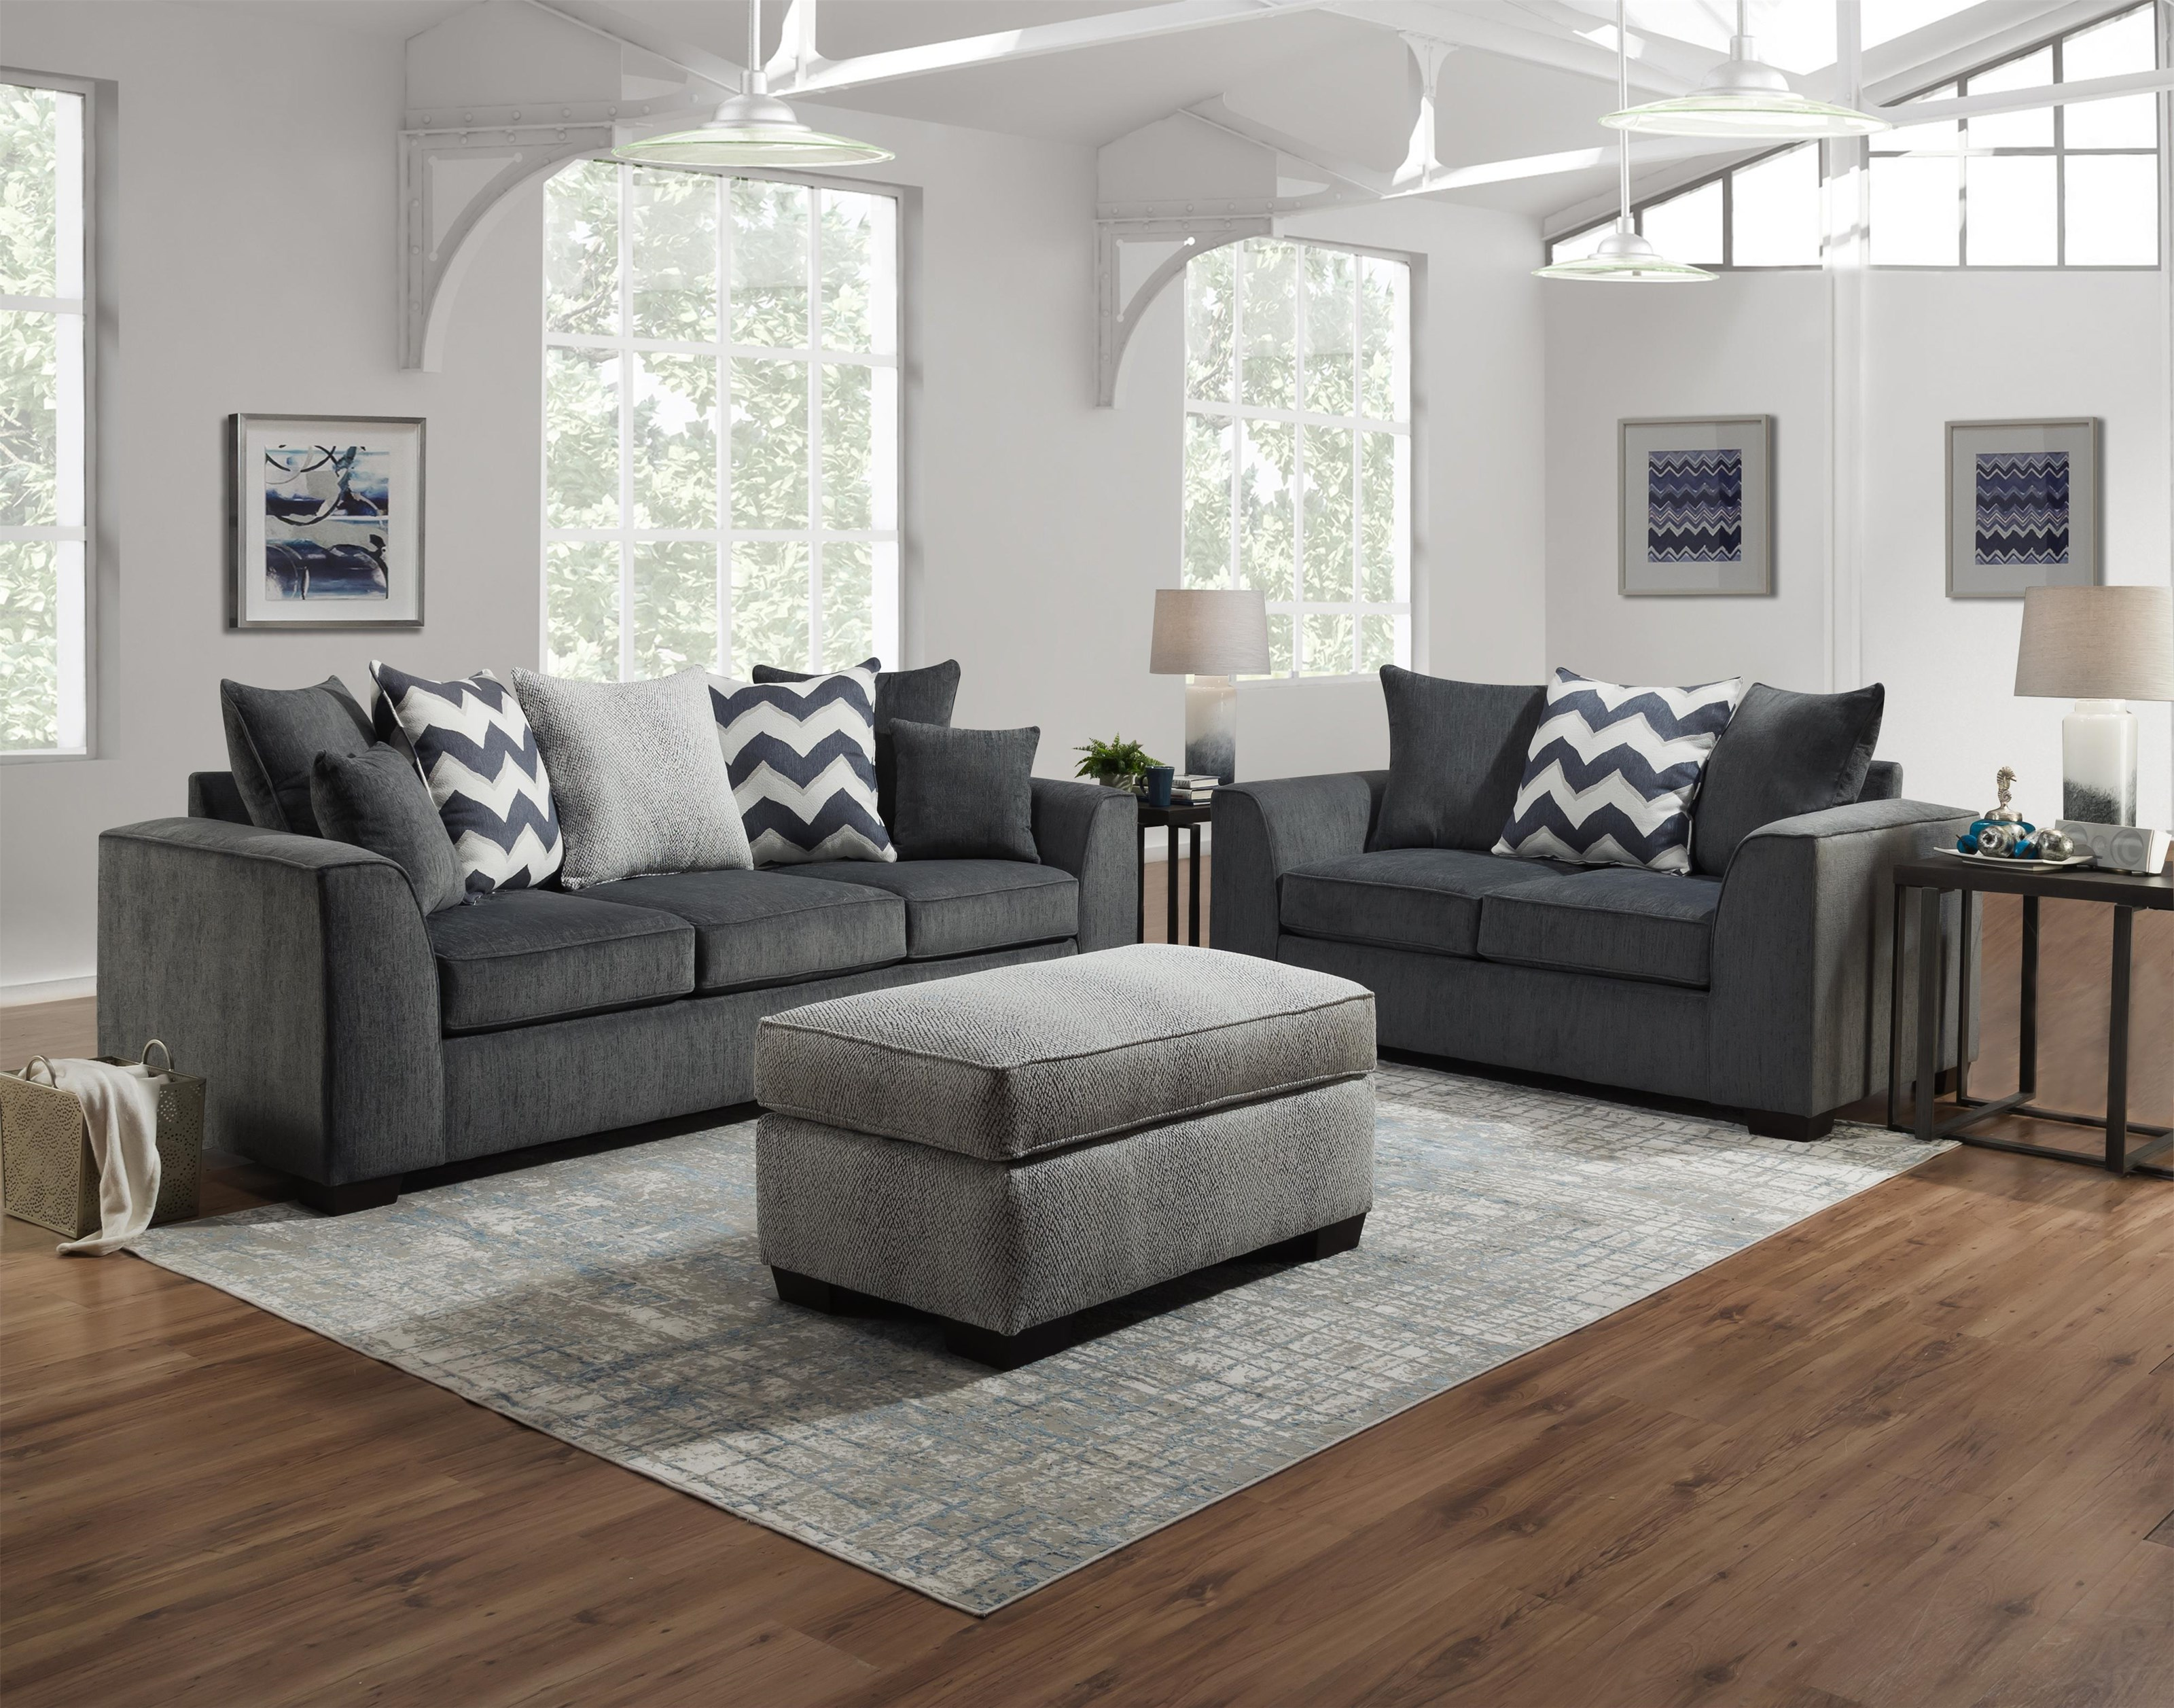 2600 Loveseat by Peak Living at Darvin Furniture